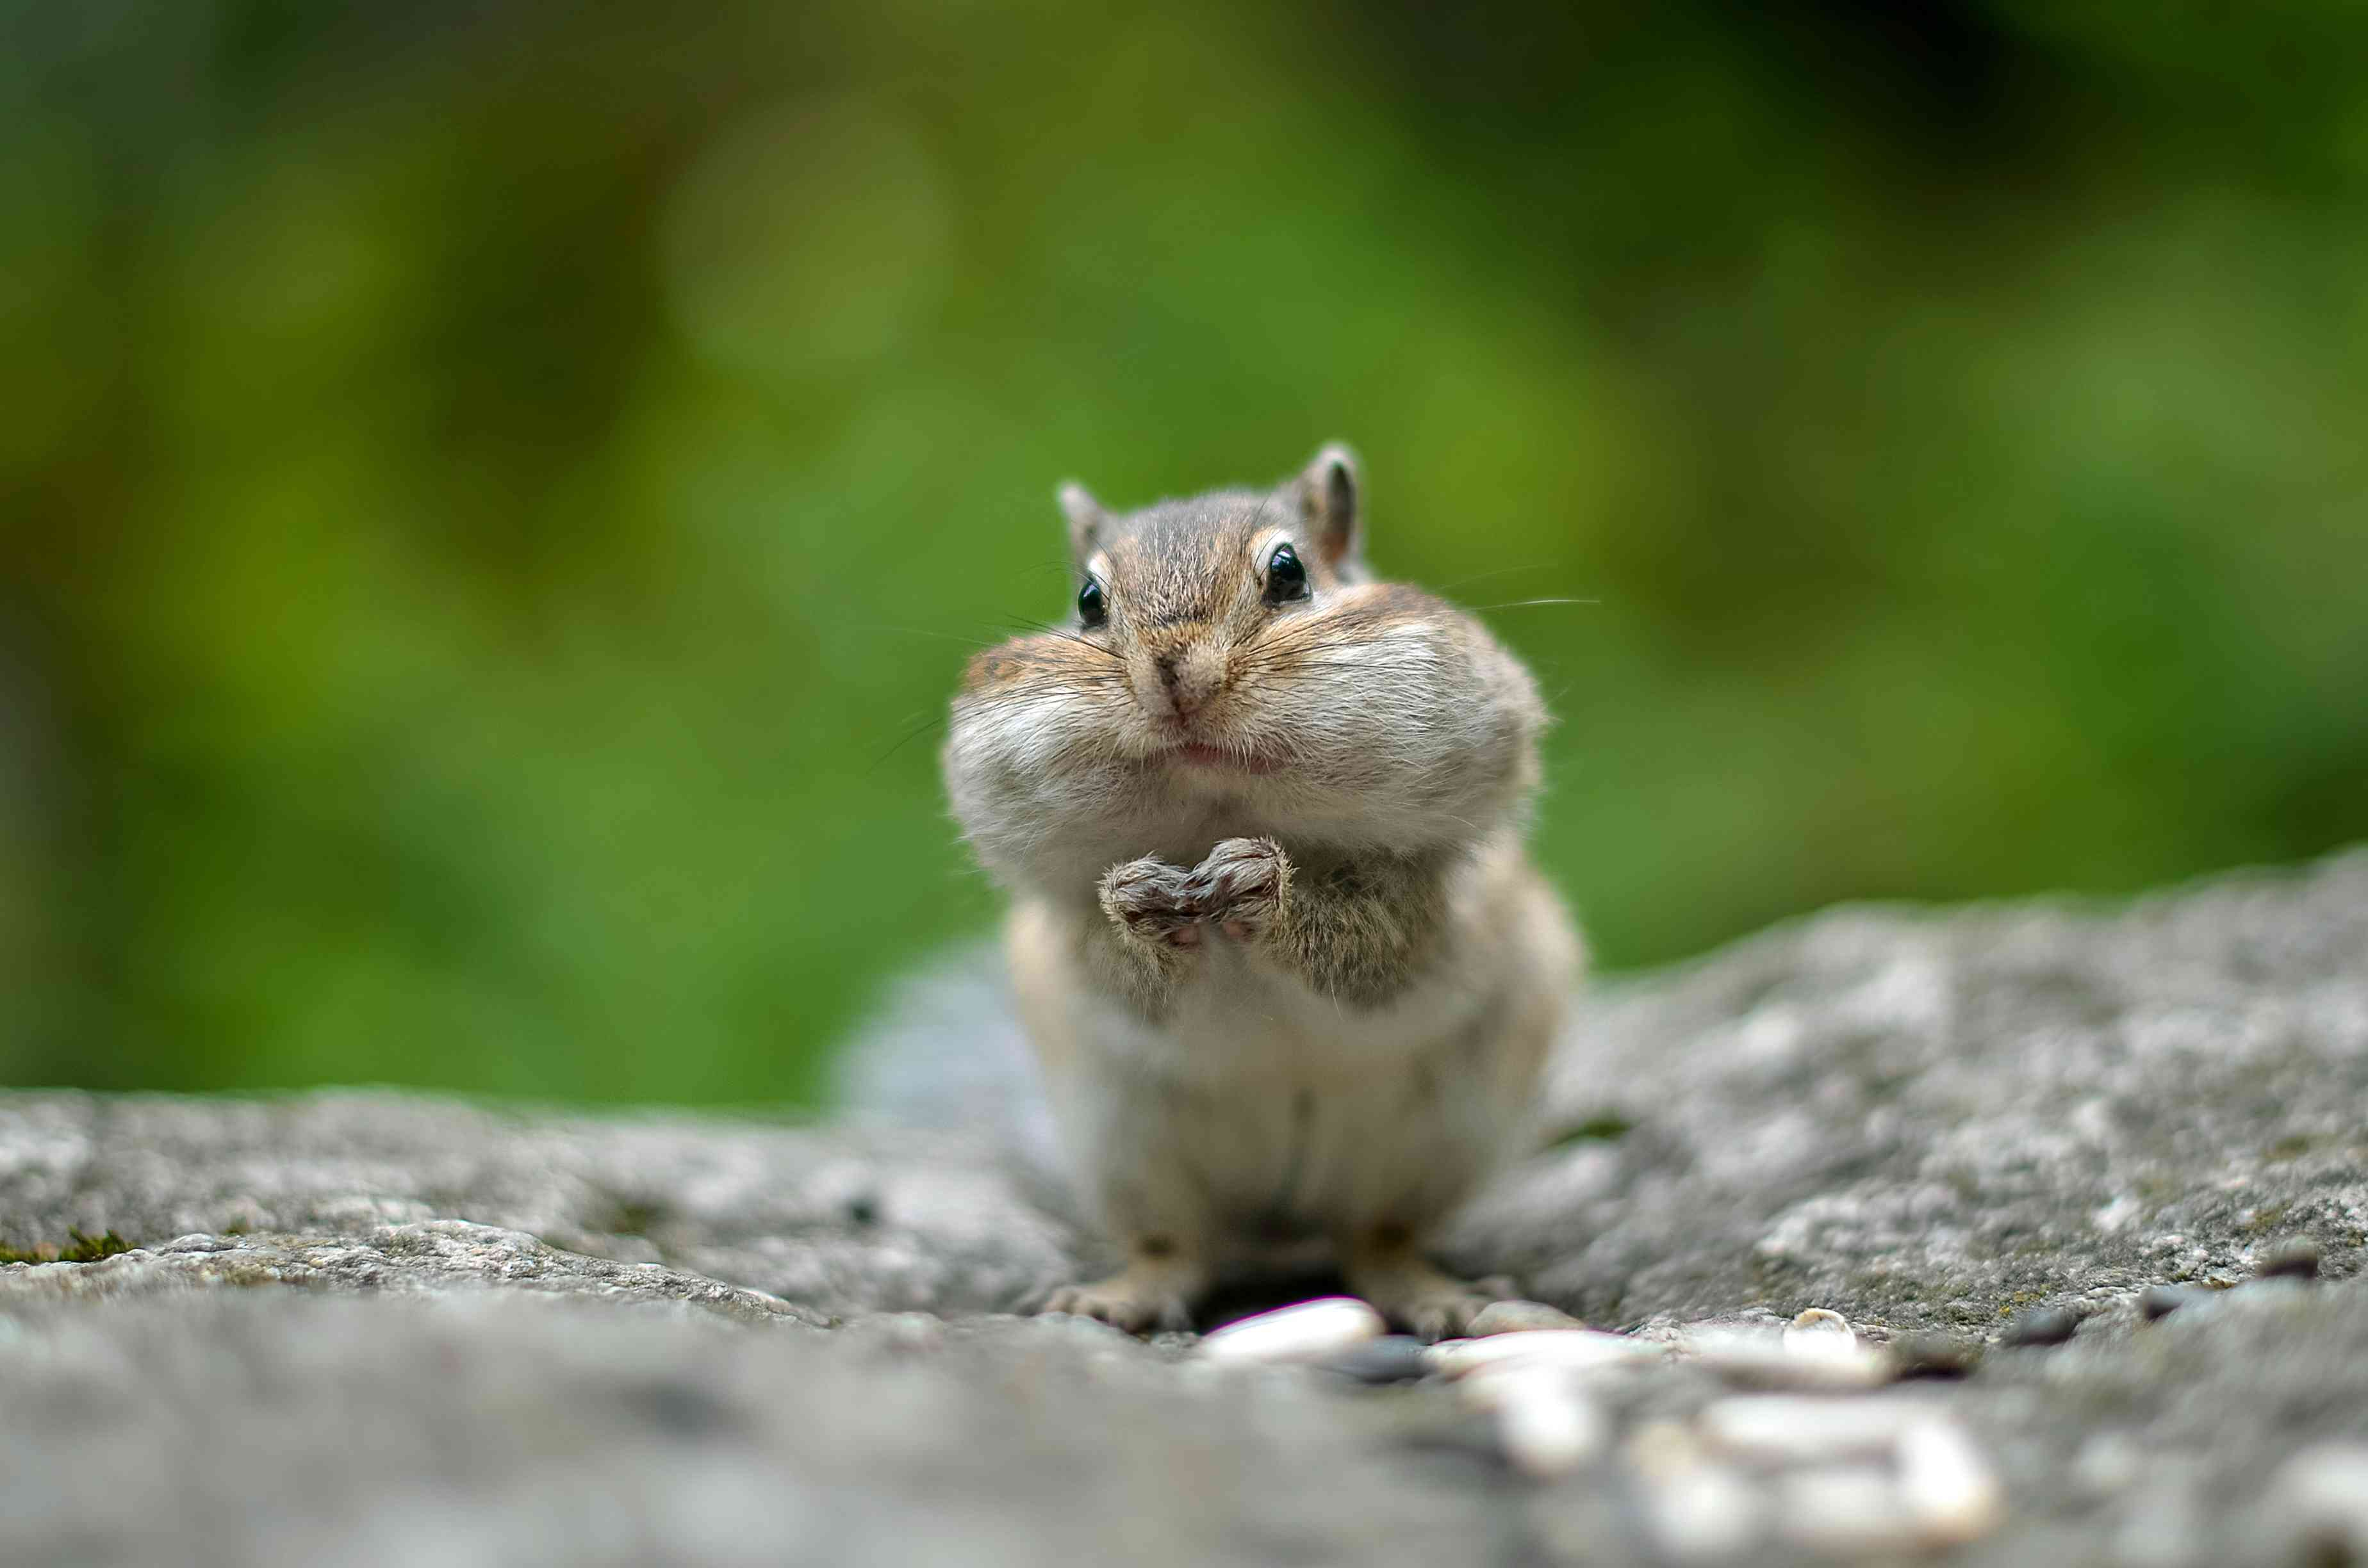 chipmunk with cheeks full of food